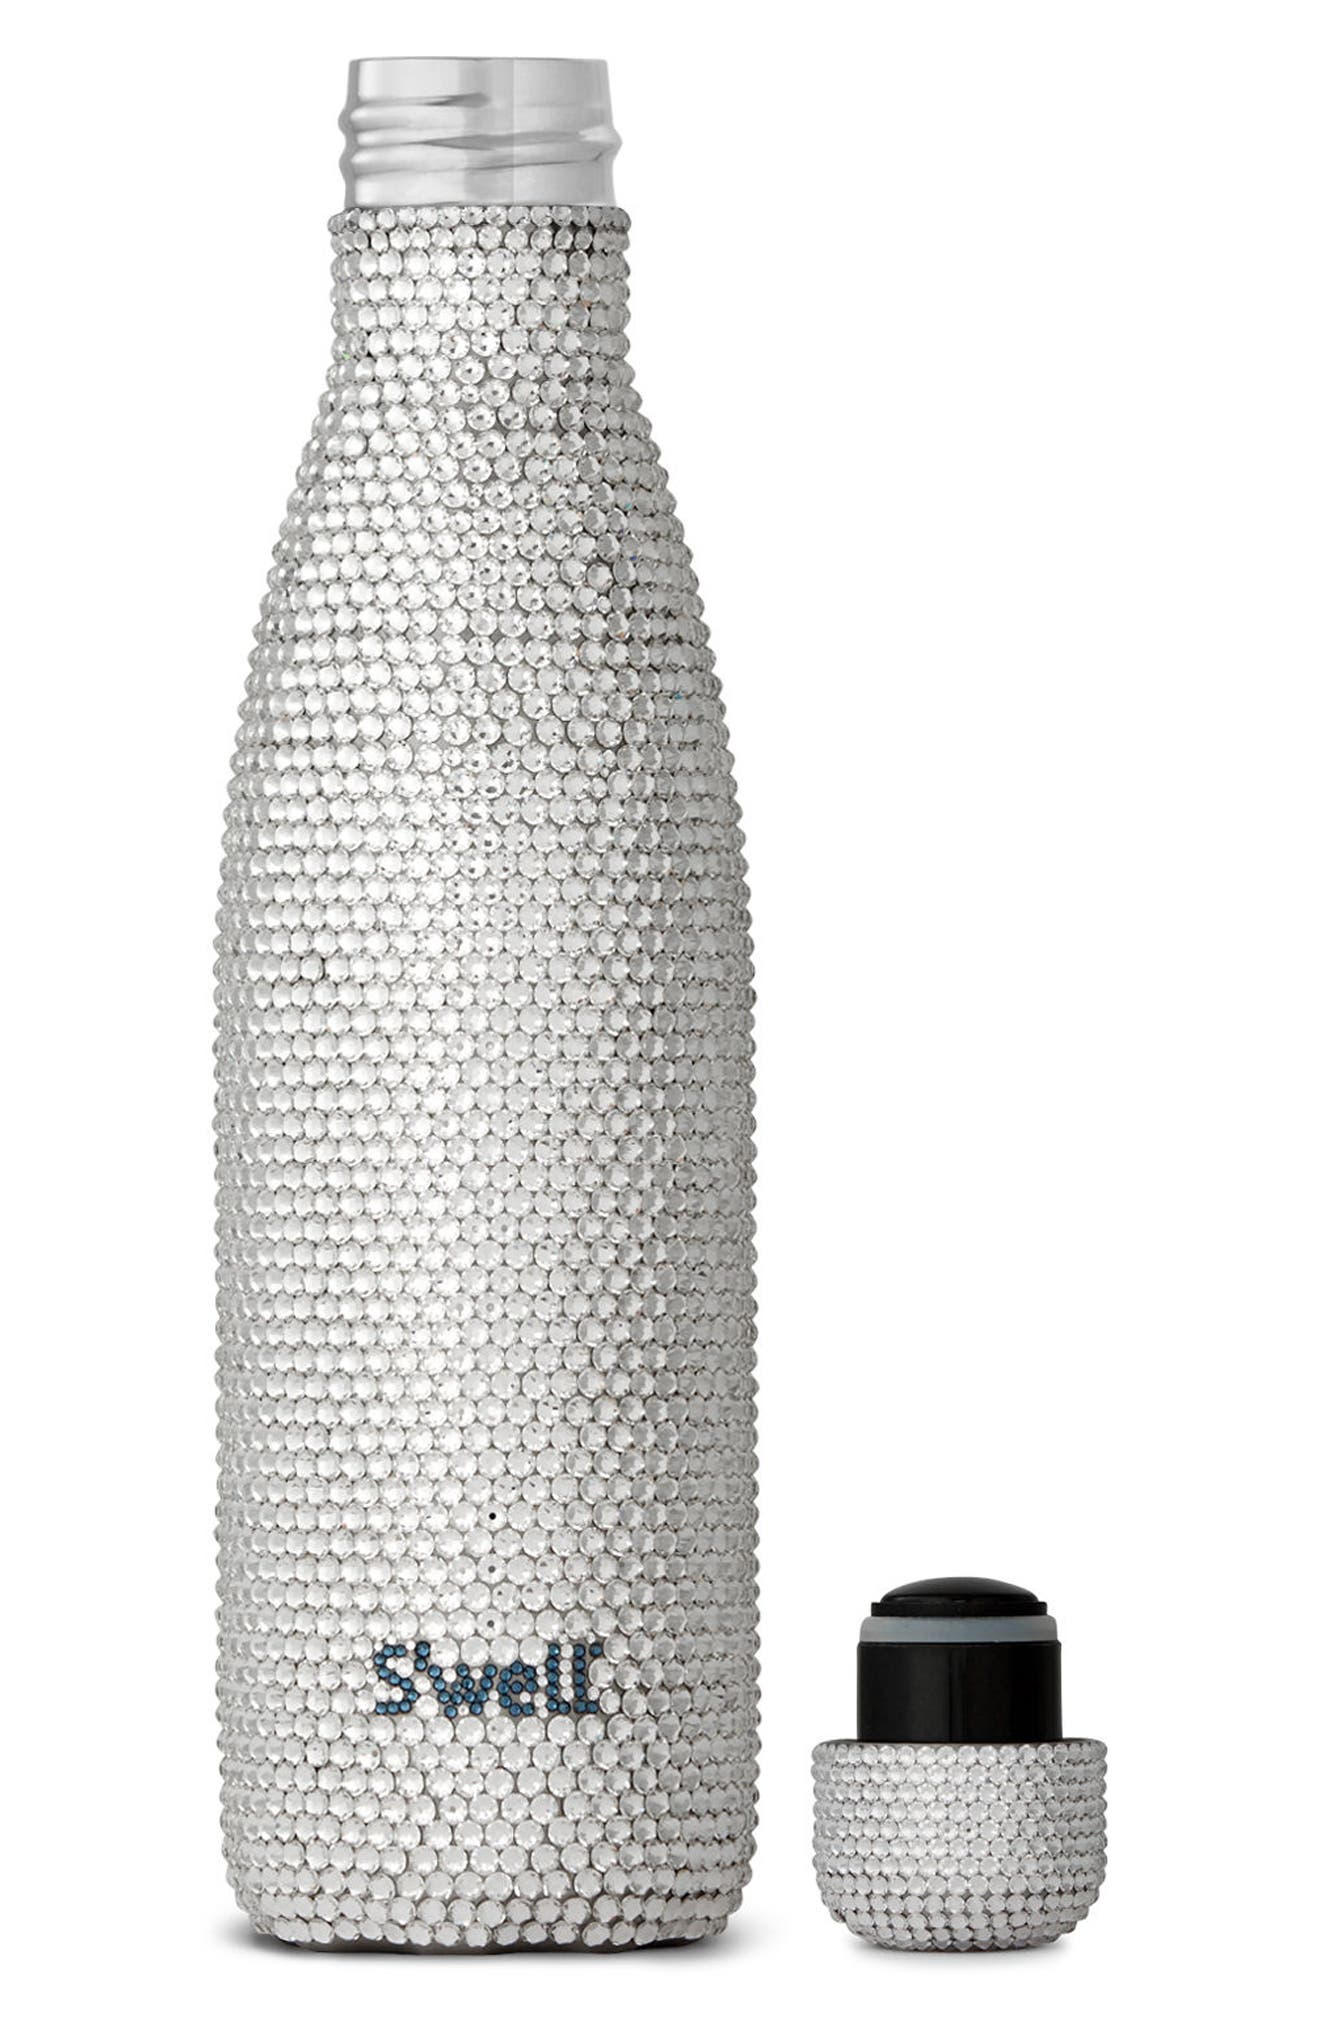 Alina Swarovski Crystal Insulated Stainless Steel Water Bottle,                             Alternate thumbnail 3, color,